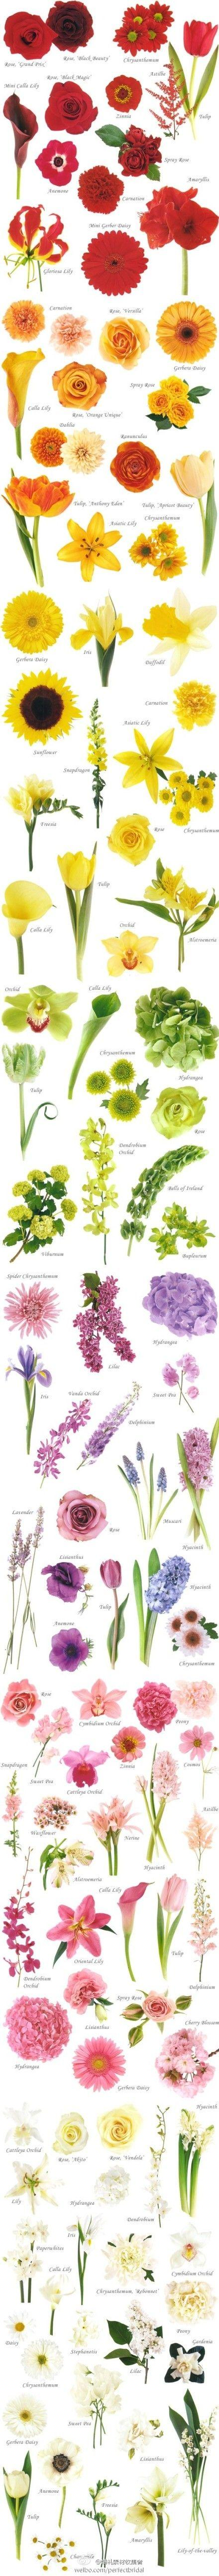 About Flower Chart Flower Colors And Wedding Flowers Asian Chinese